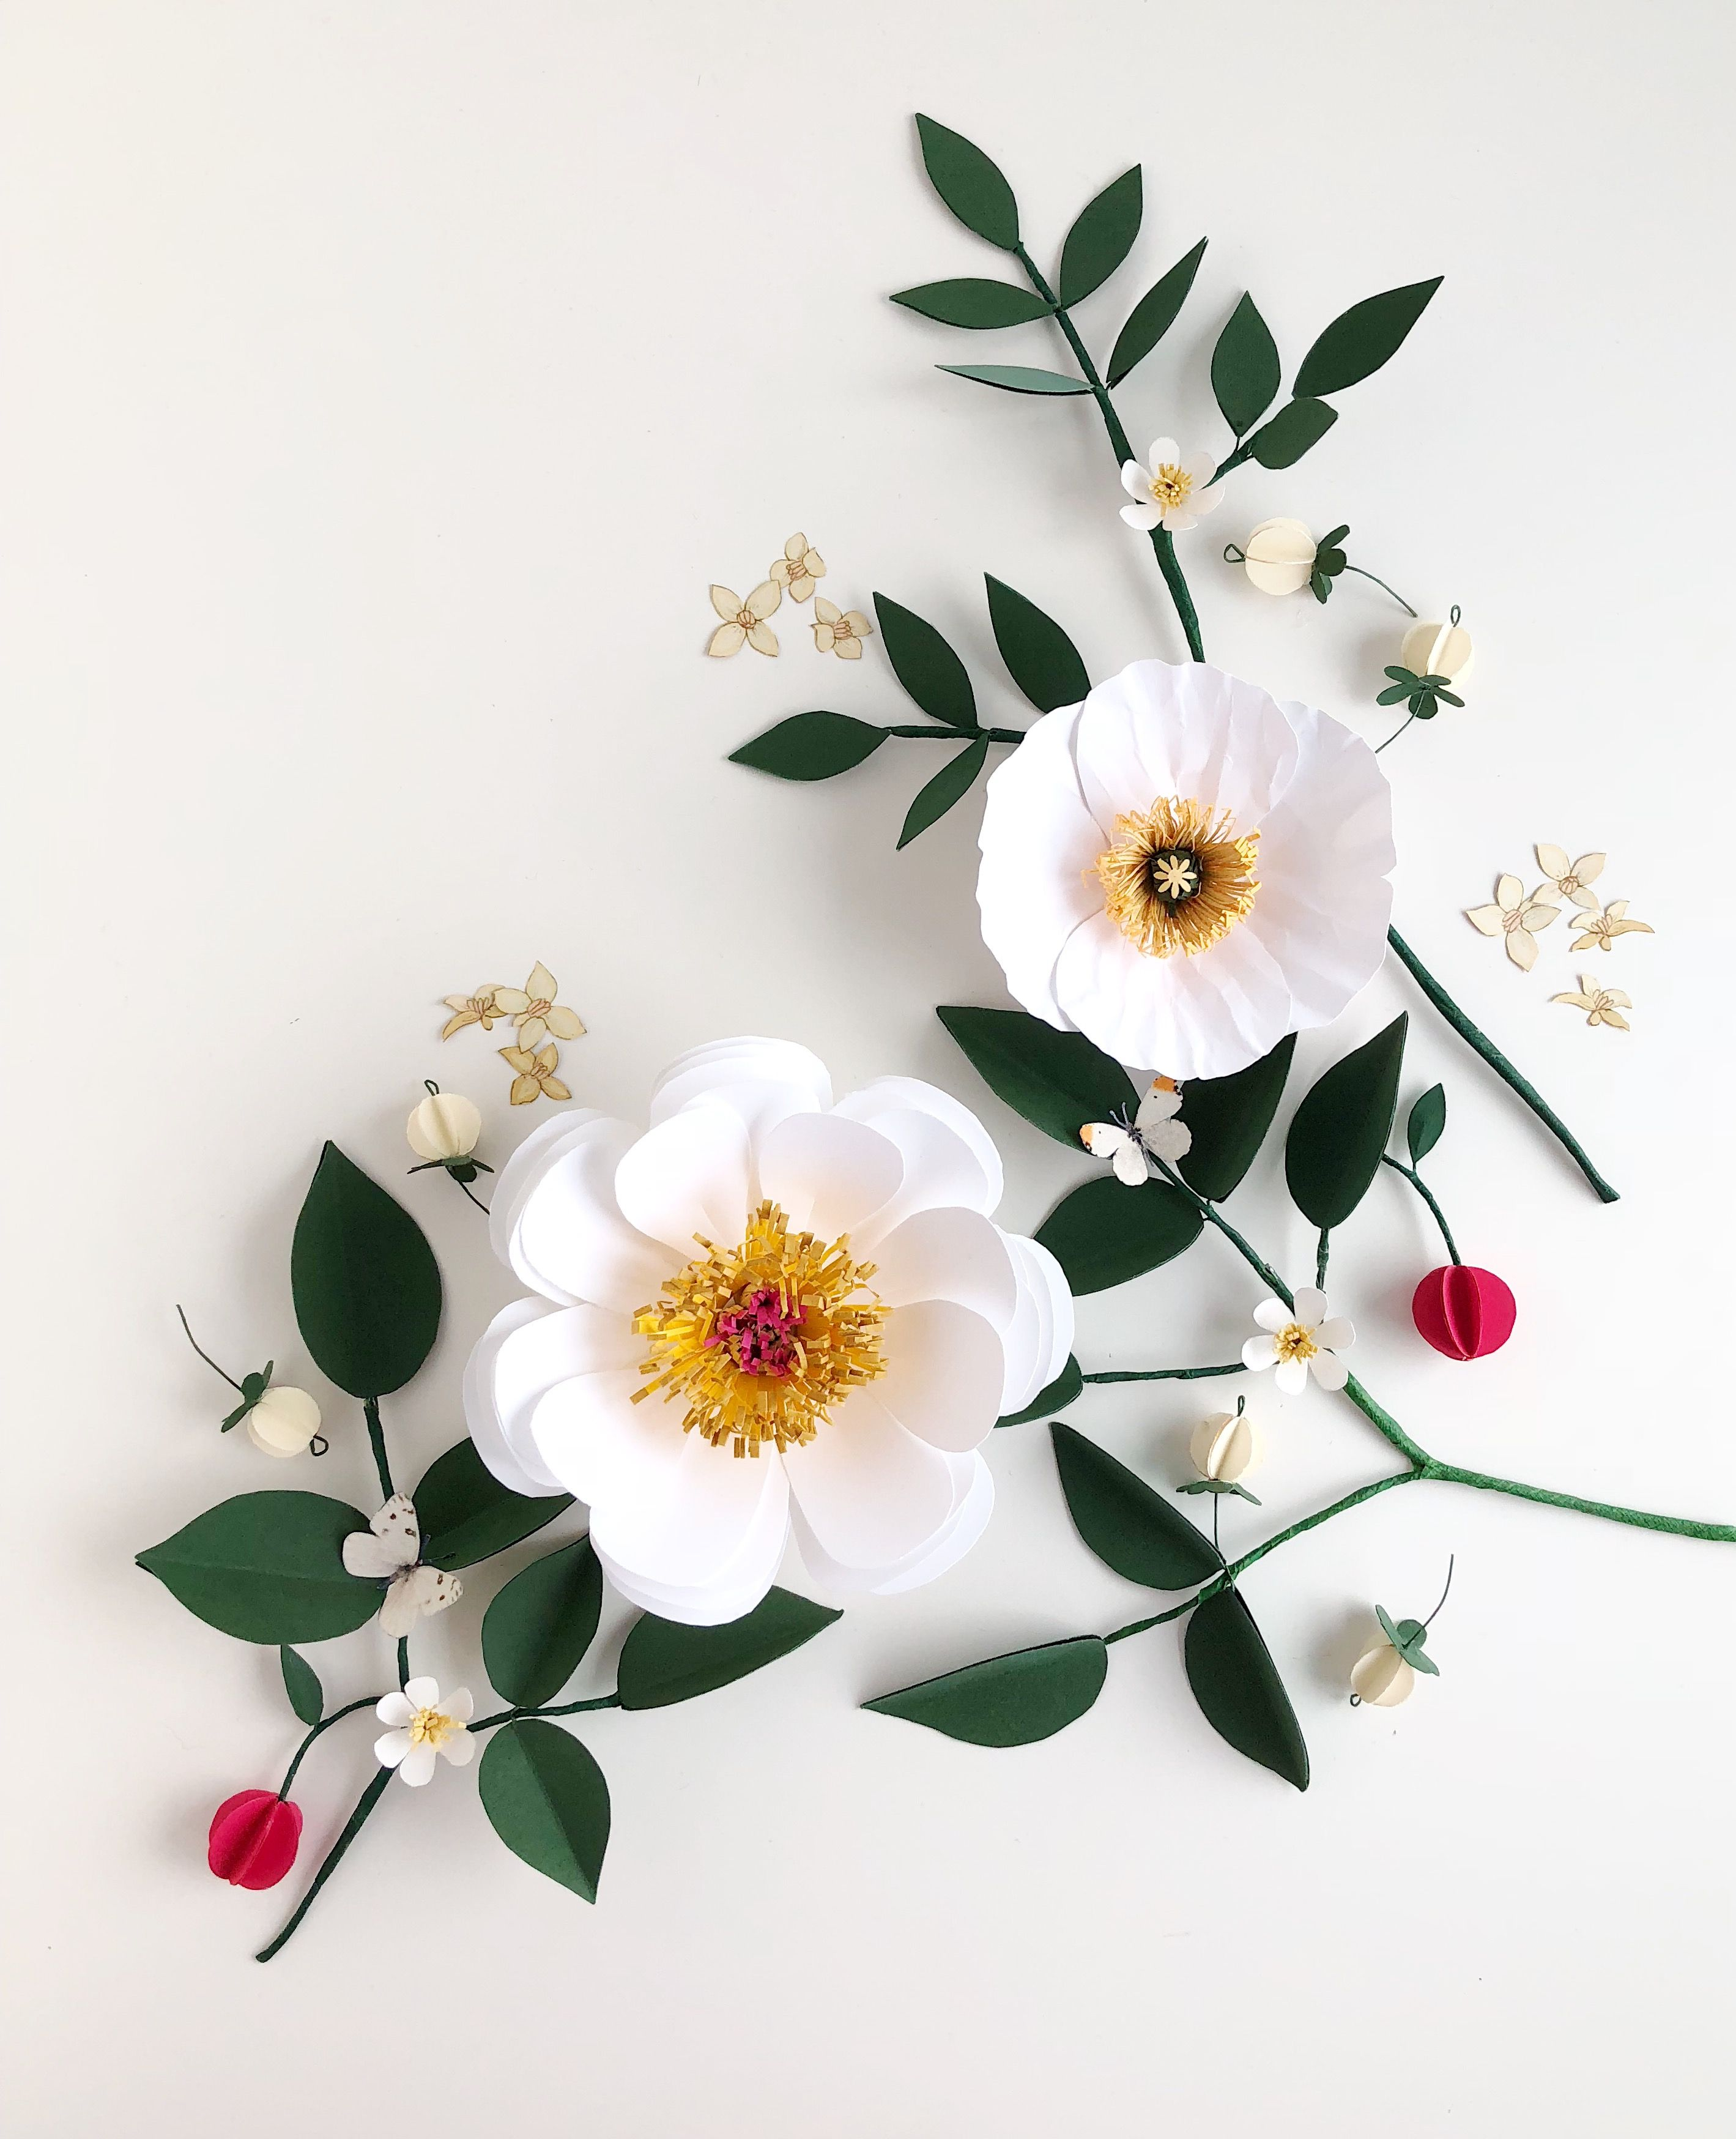 Handmade paper flowers by Leony Co  Paperflowers  Pinterest